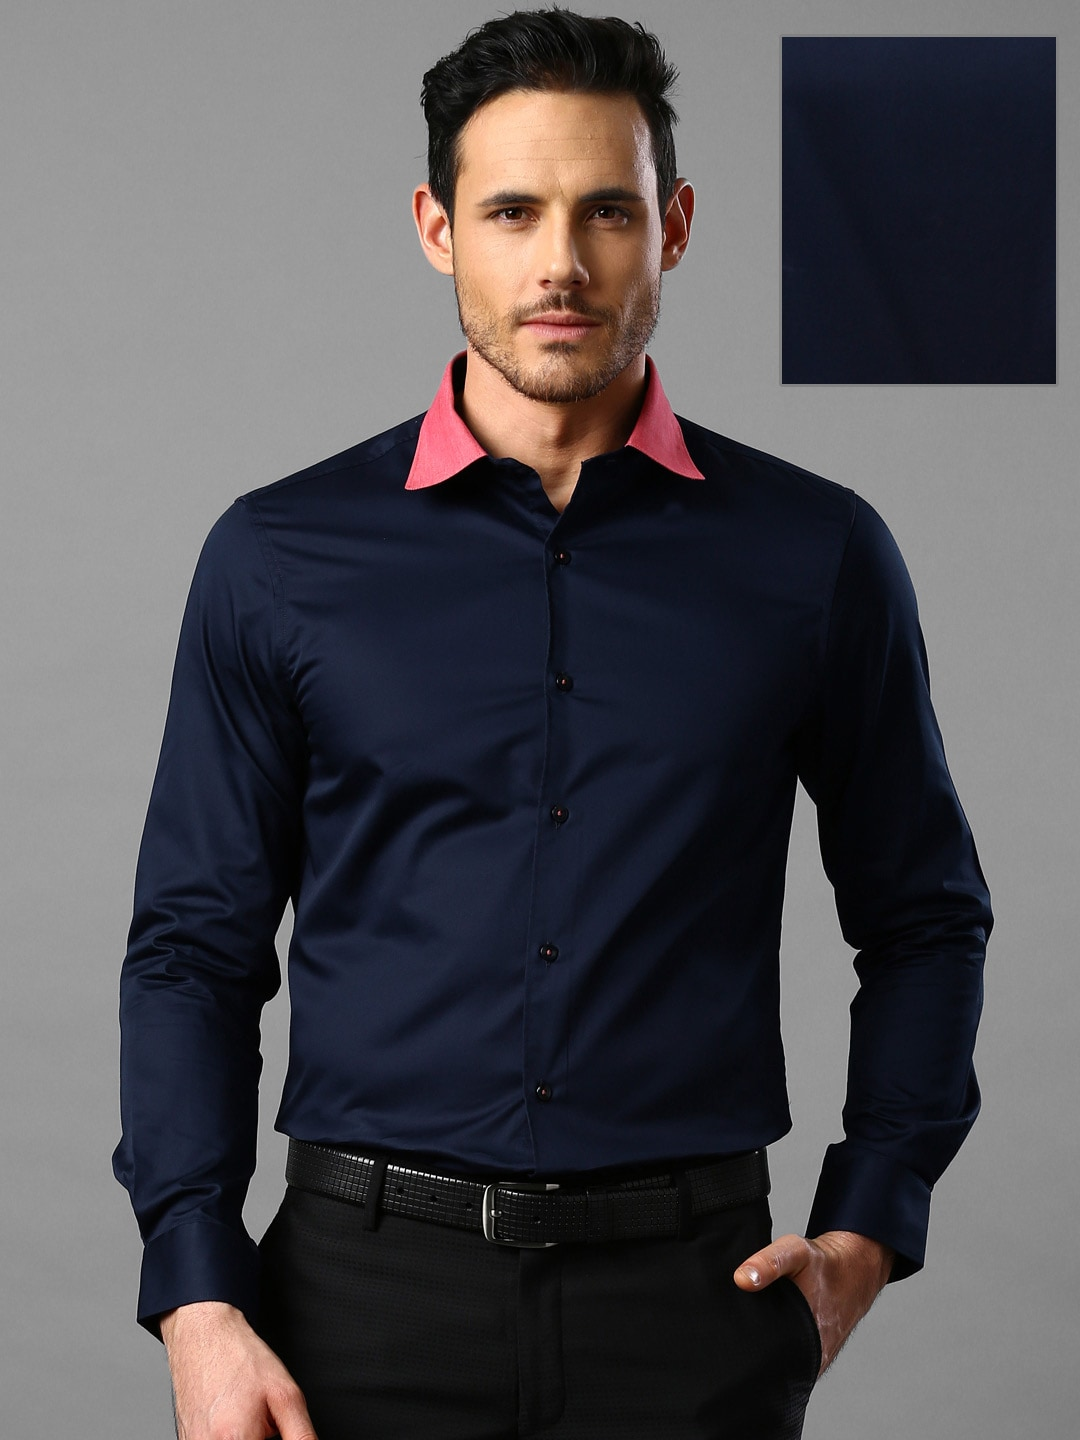 Mens Formal Shirts  Tommy Hilfiger